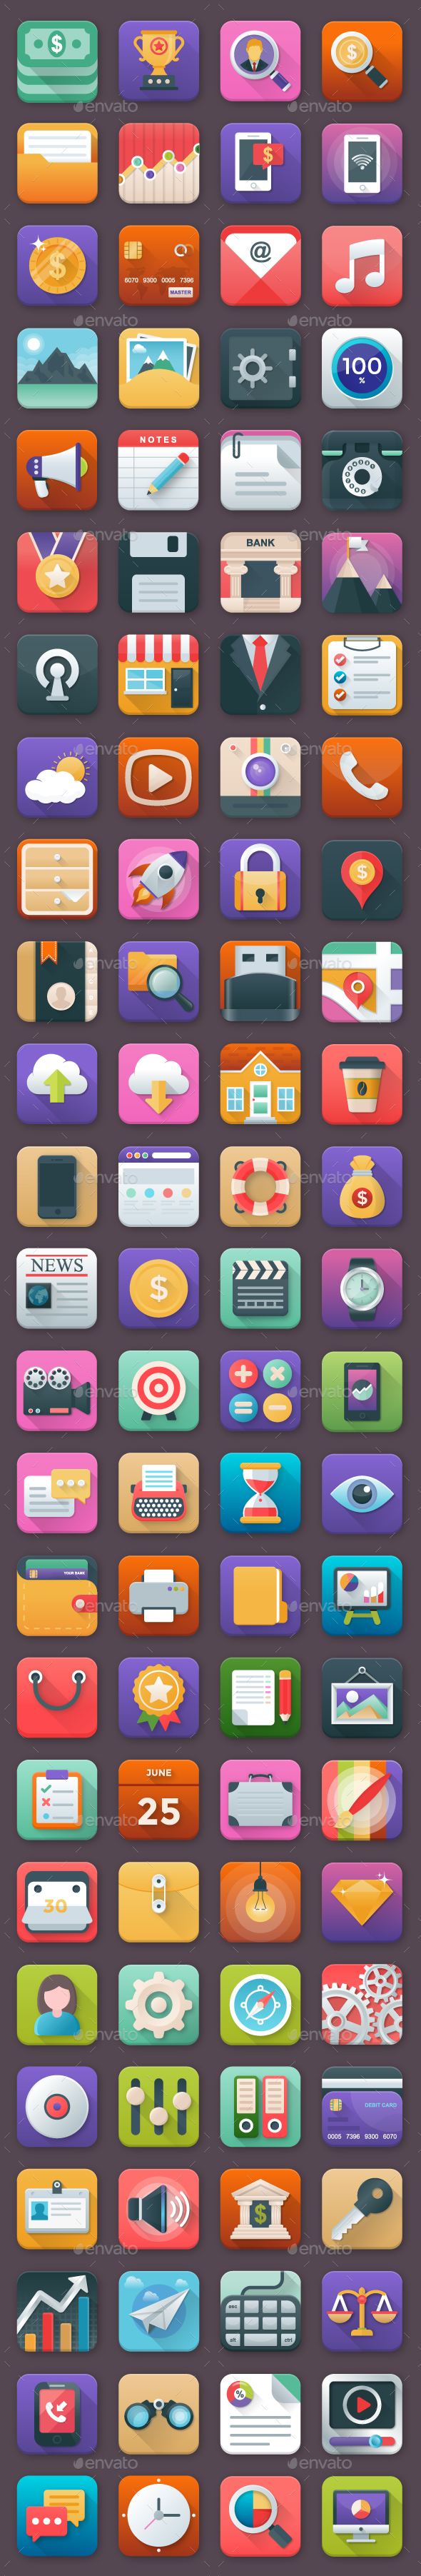 100 Business App Icons Set - Icons